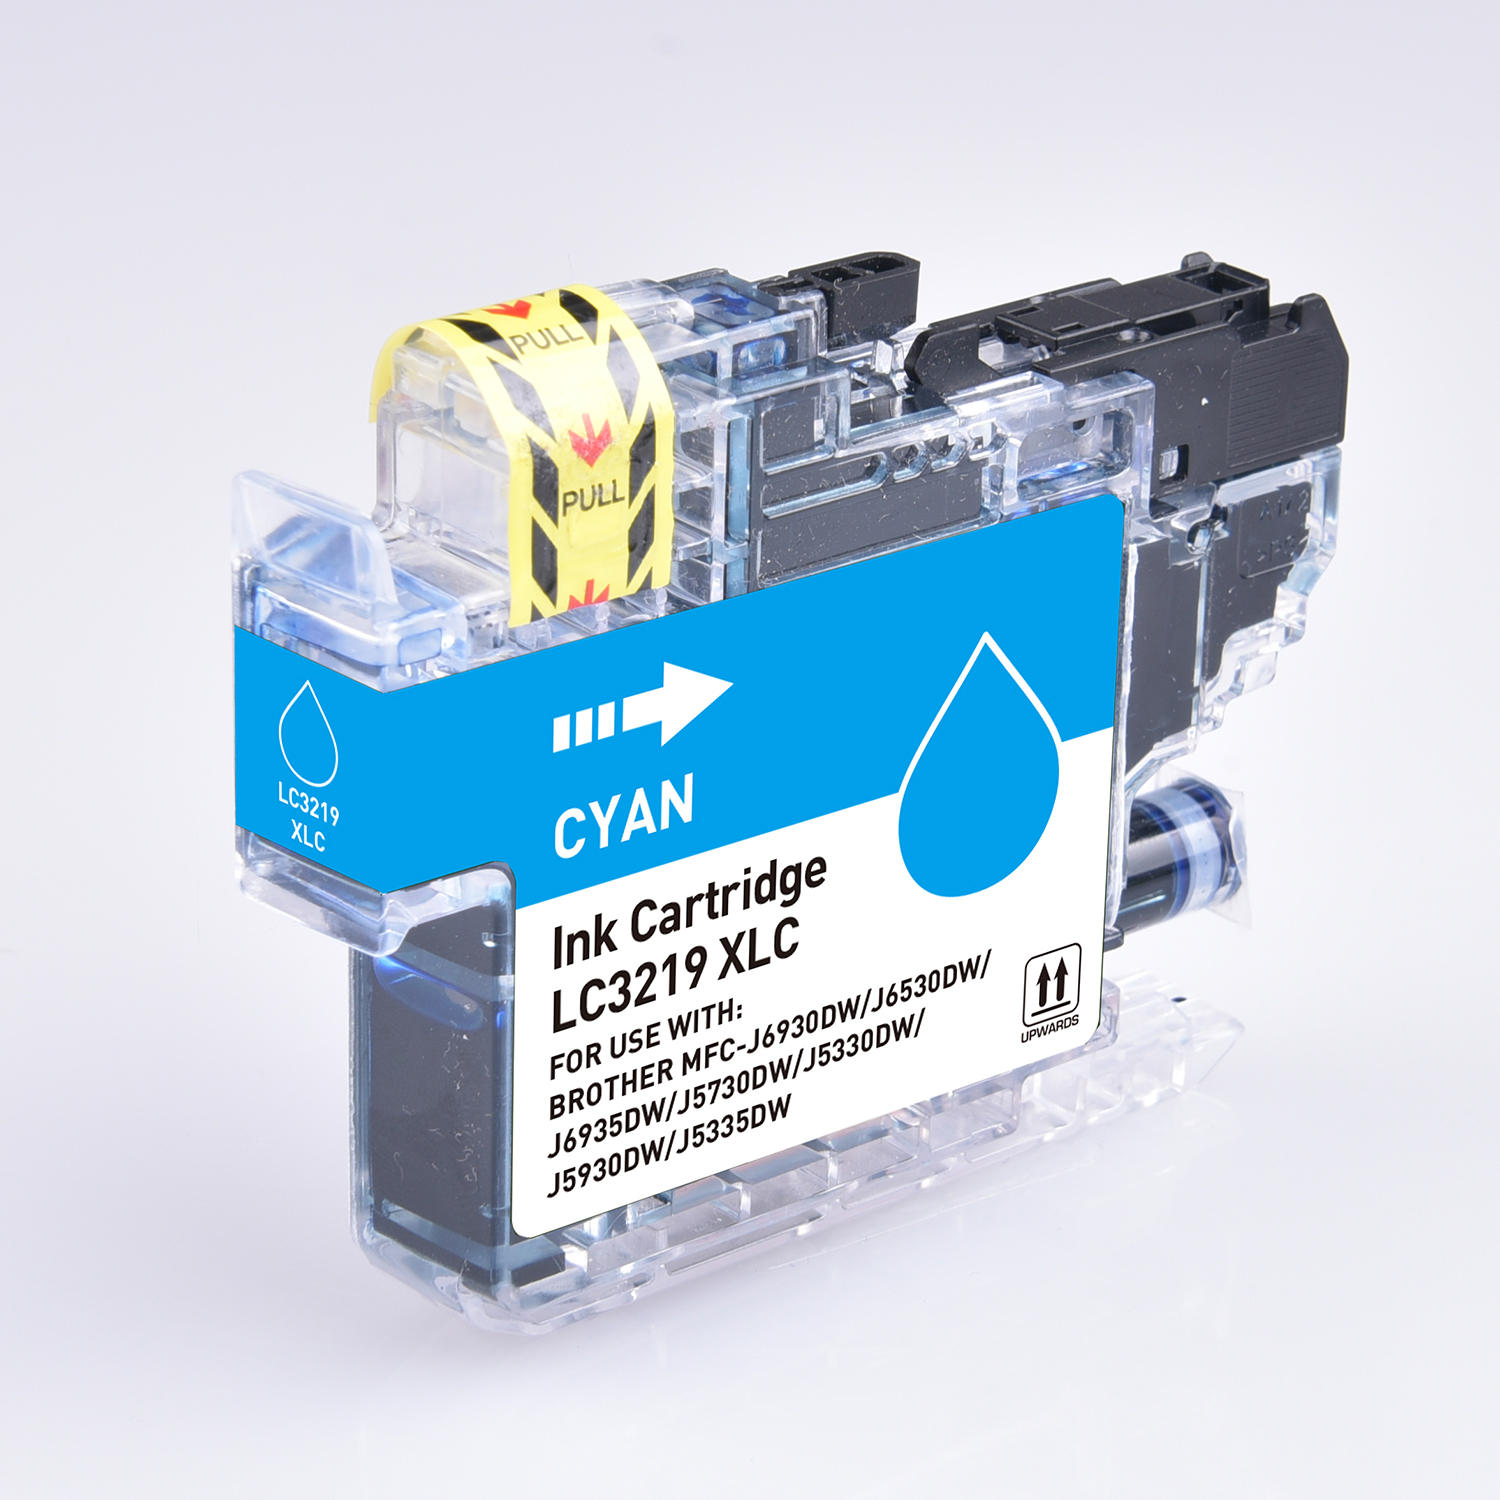 Ink cartridges 5 Star Value Remanufactured Inkjet Cartridge Page Life 1500pp HY Cyan Brother LC3219XLC Alternative